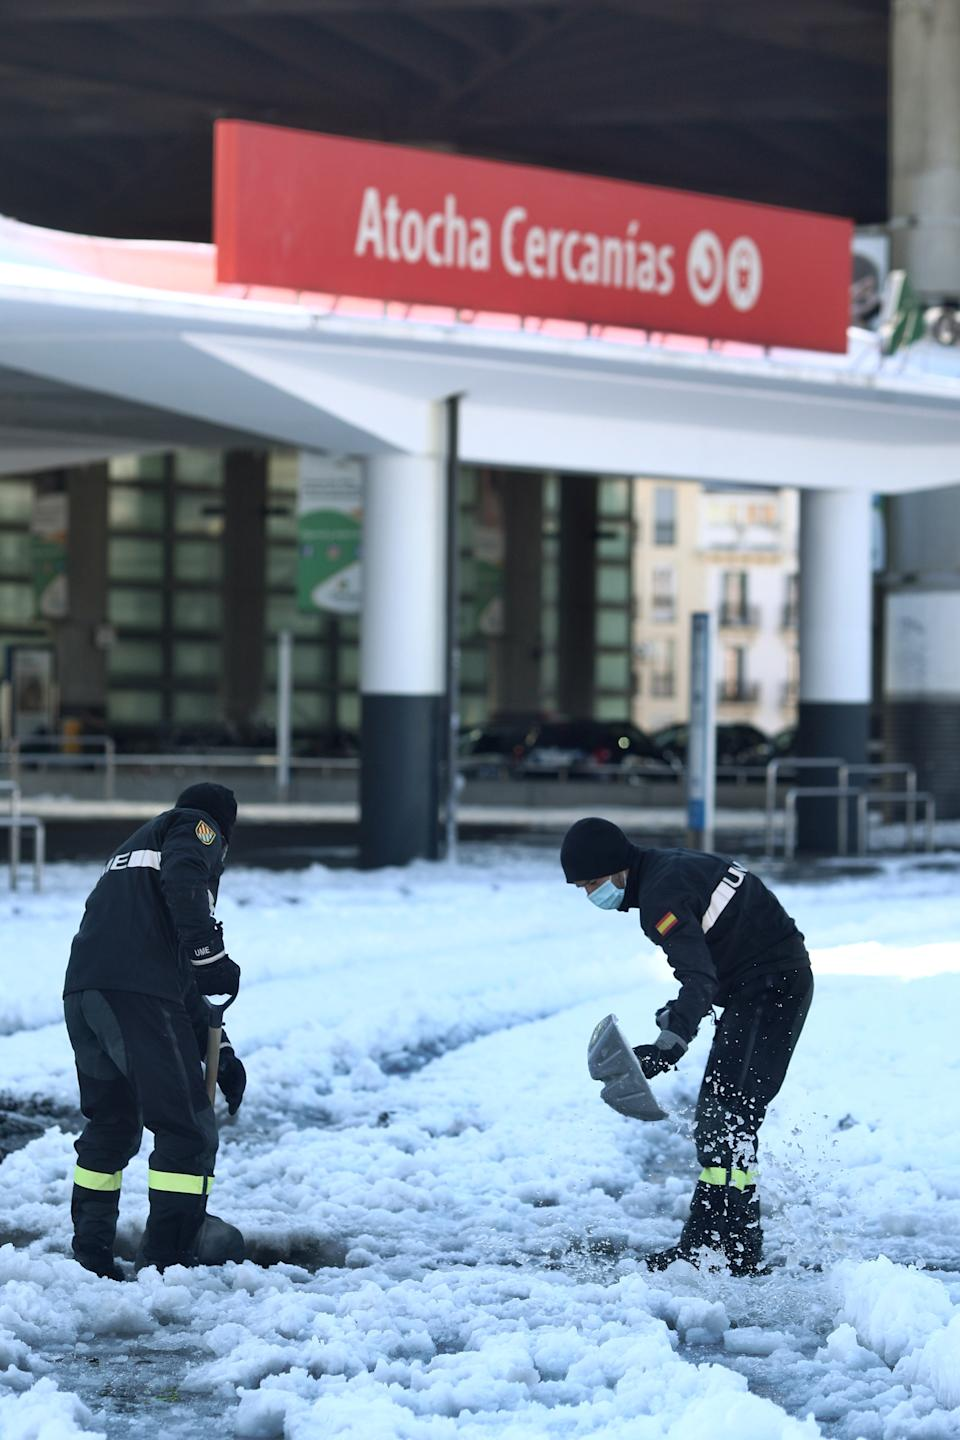 MADRID, SPAIN - JANUARY 11: Military personnel from UME carry out snow removal work at the Puerta de Atocha Station on January 11, 2021 in Madrid (Spain). The Minister of Defence, Margarita Robles, has travelled to Atocha to thank the military for their collaboration in various tasks following the devastation caused by the snowstorm 'Filomena'. (Photo by Eduardo Parra/Europa Press via Getty Images) (Photo by Europa Press News/Europa Press via Getty Images)